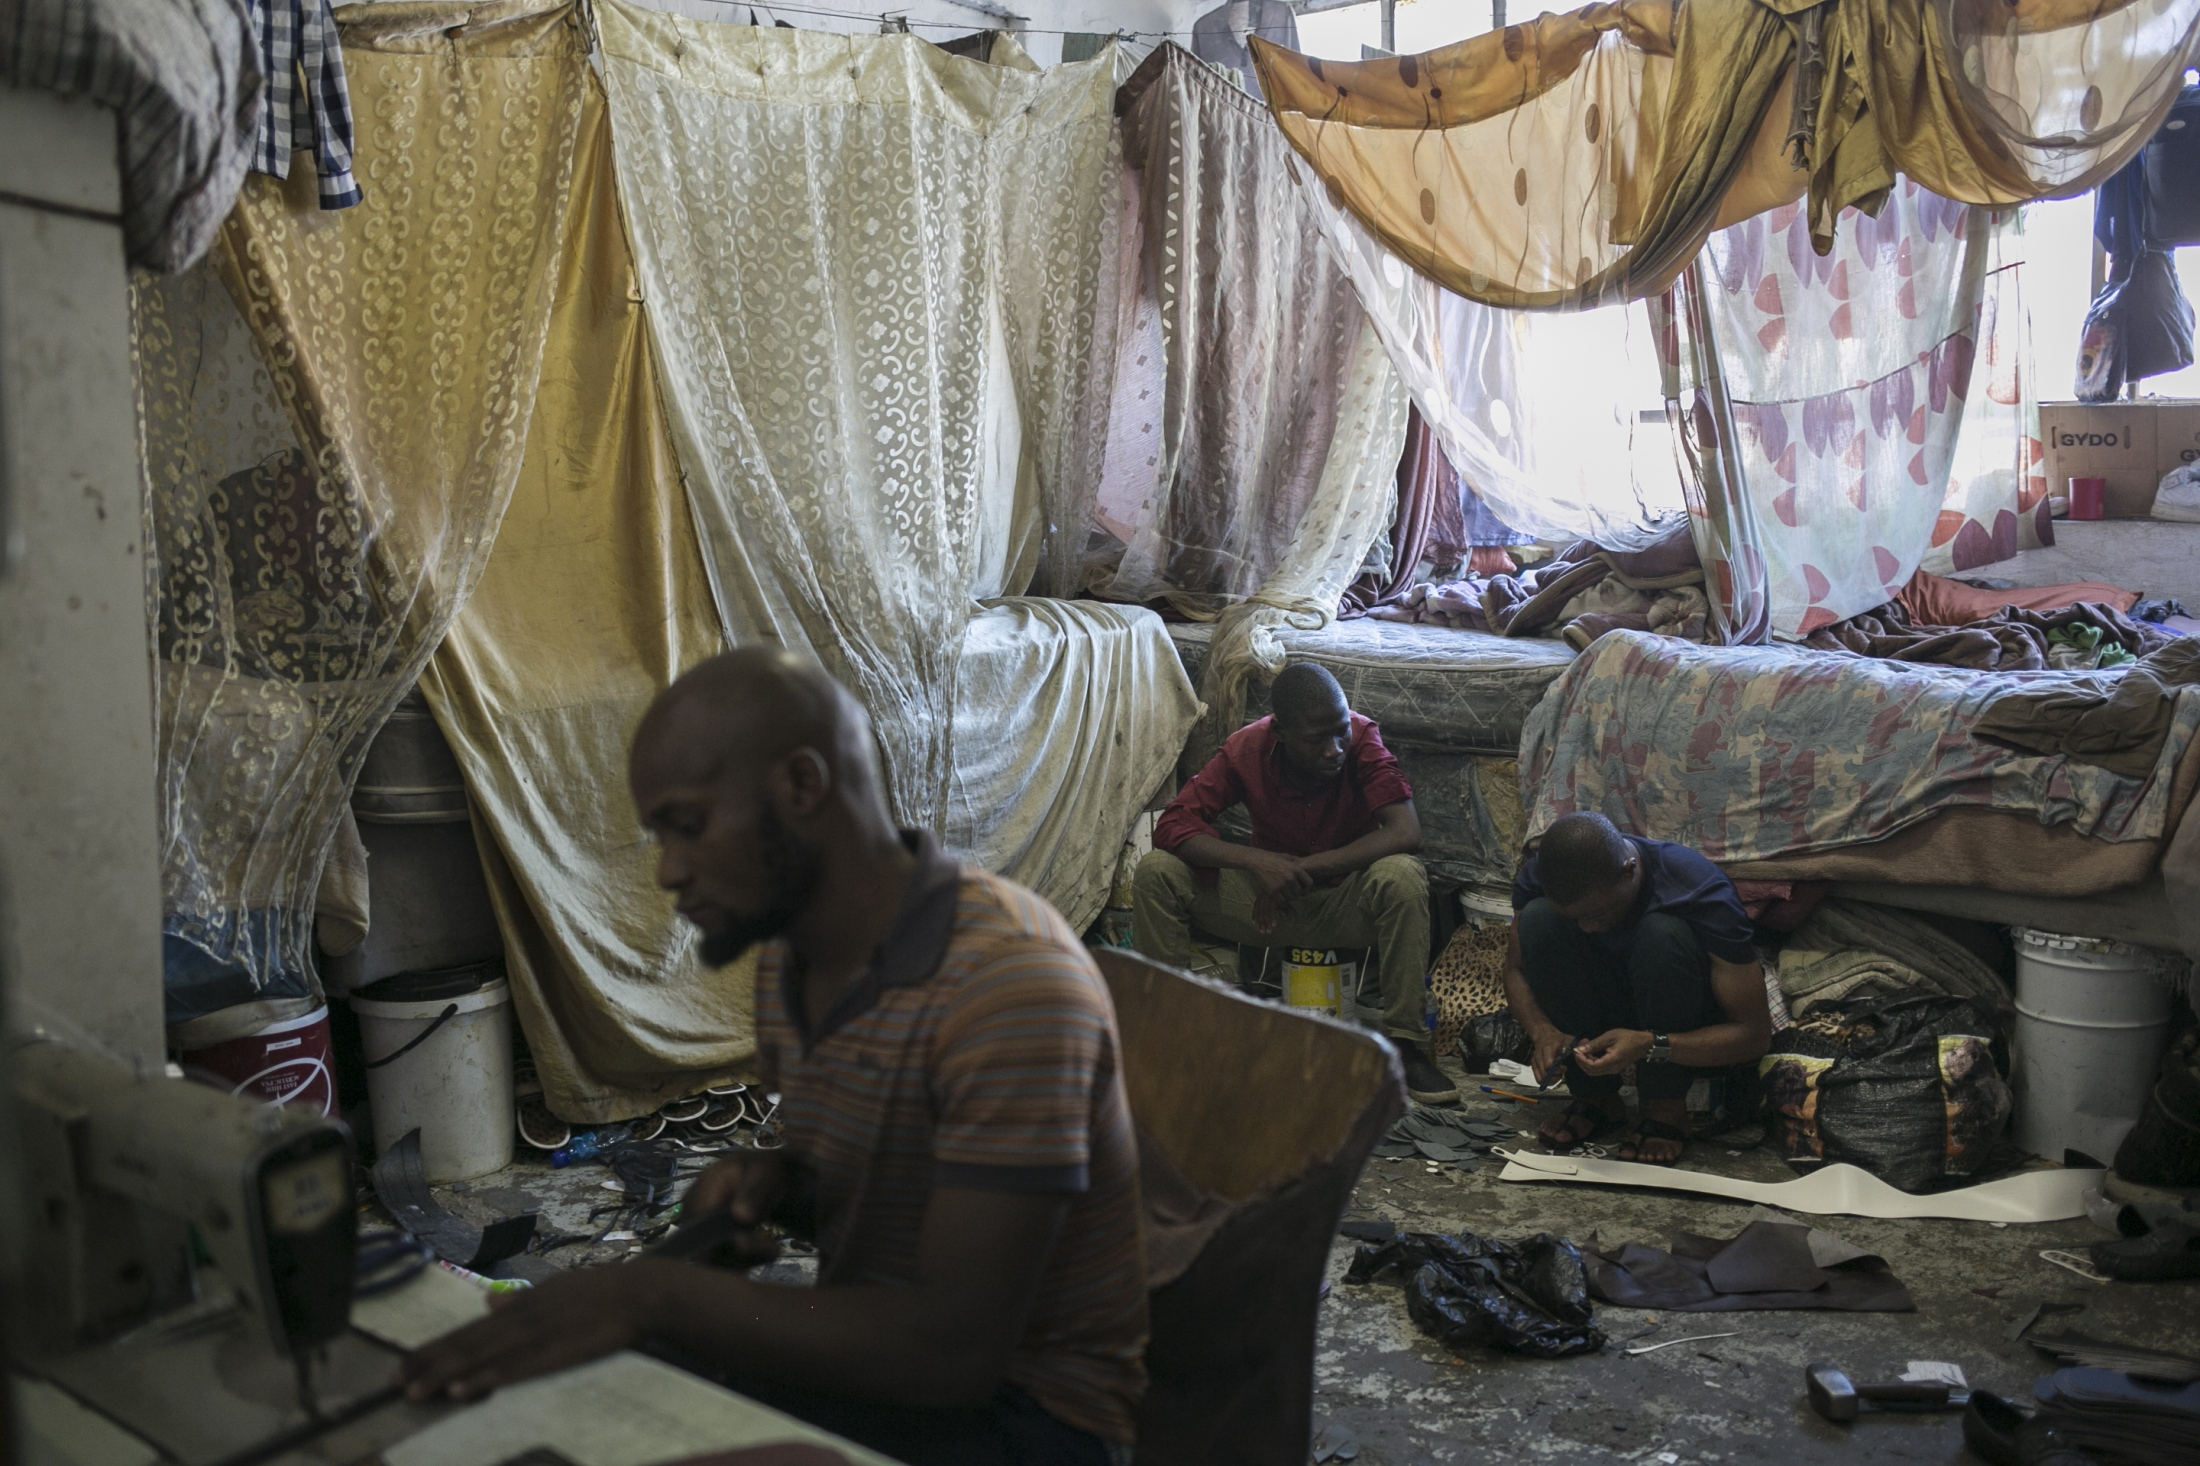 Malawian migrant shoe makers work inside their bedroom. March 29, 2018.